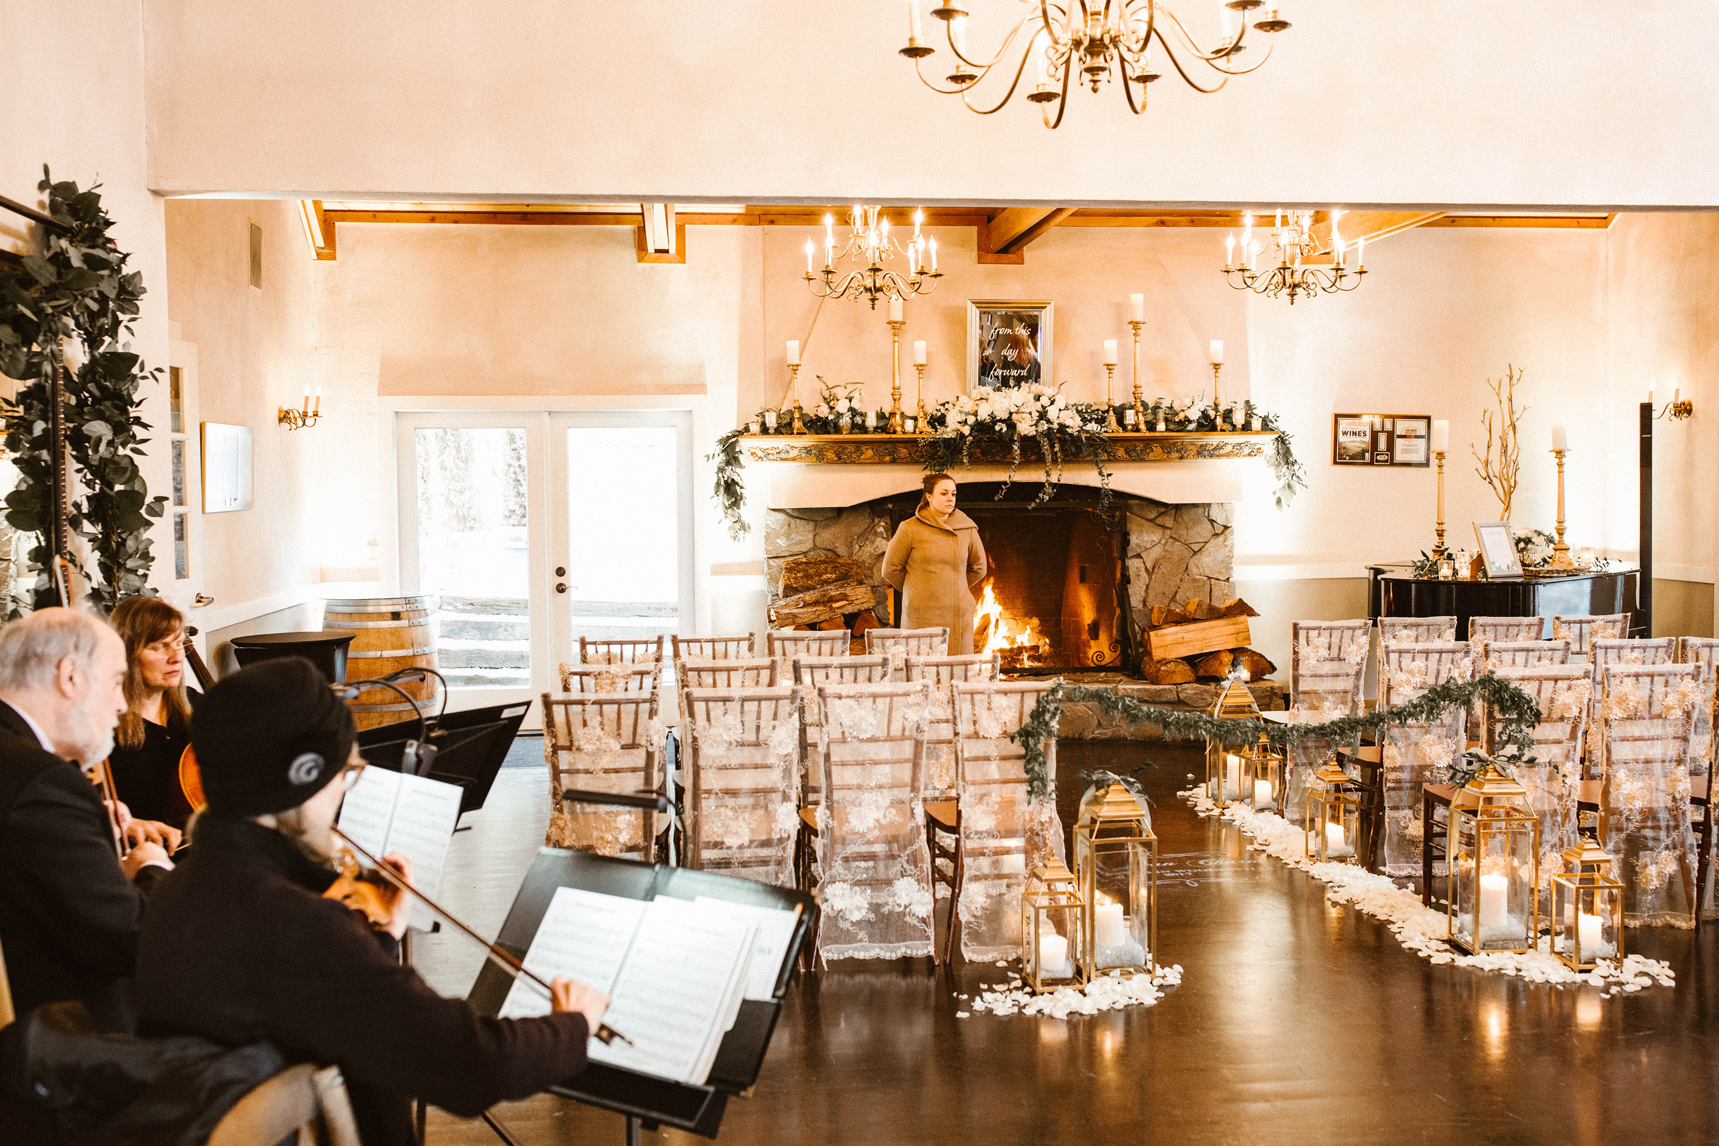 DeLille+Cellars_The+Chateau_Woodinville_2017_Weddings+In+Woodinville92.jpg